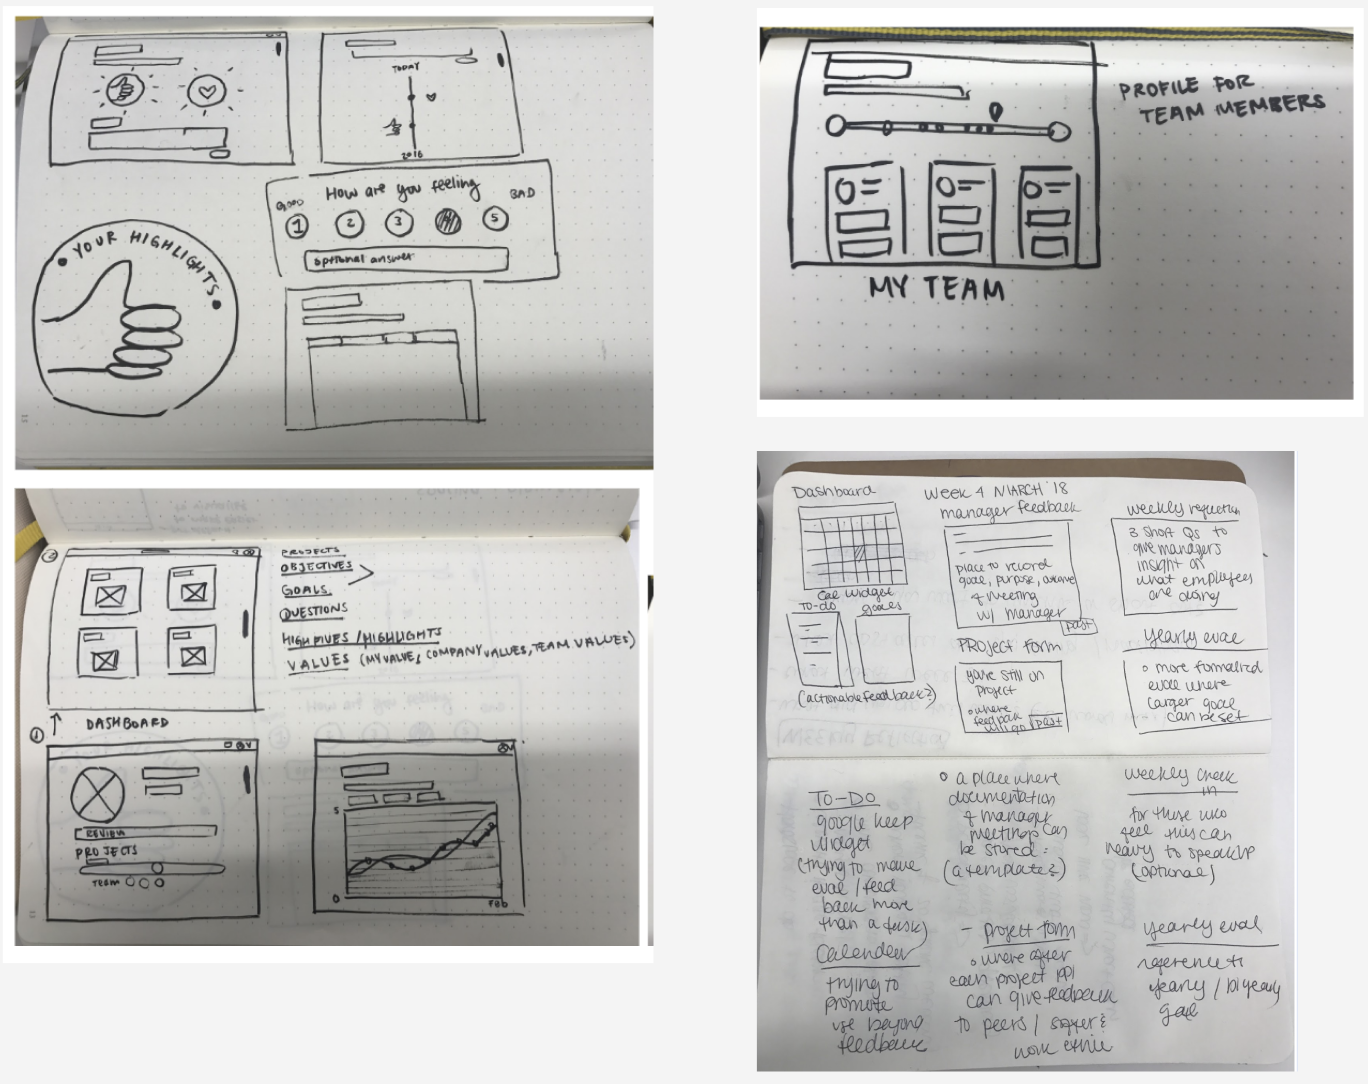 Our team visualized what our ideas would look like if turned into a prototype